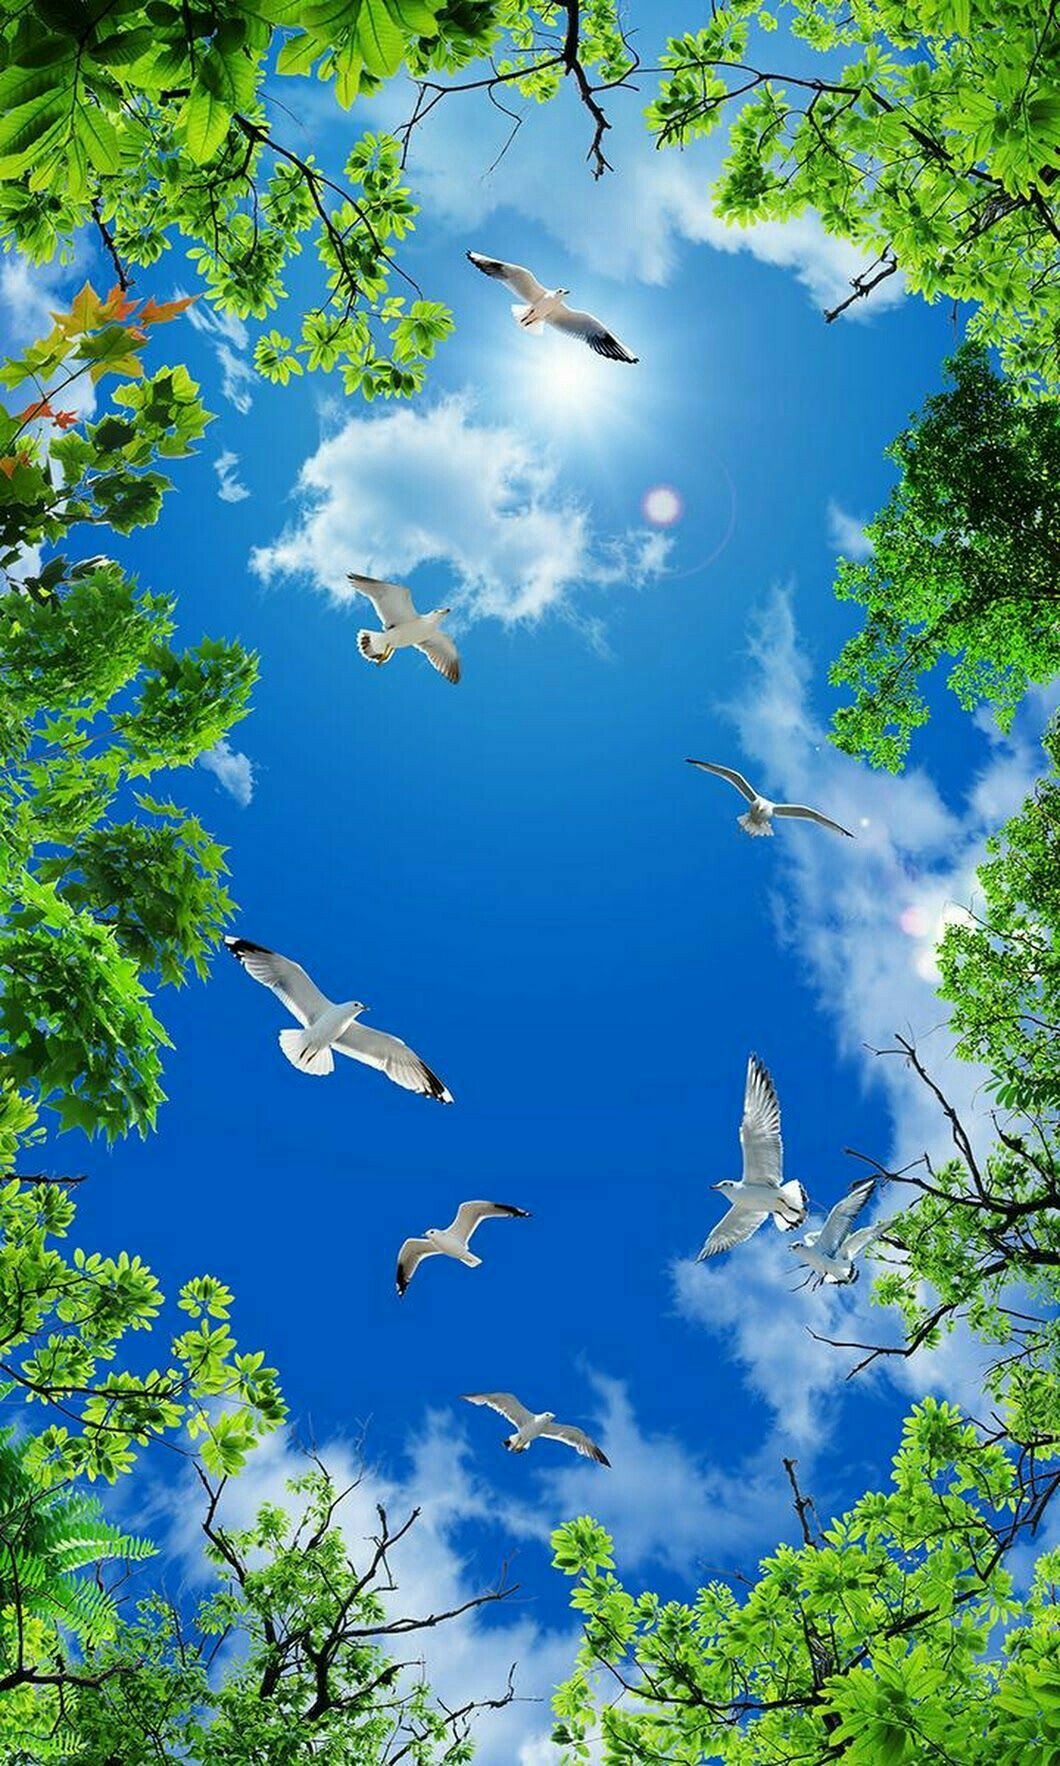 Its My Favrt I Love Flying Birds Beautiful Nature Beautiful Nature Wallpaper Beautiful Landscapes